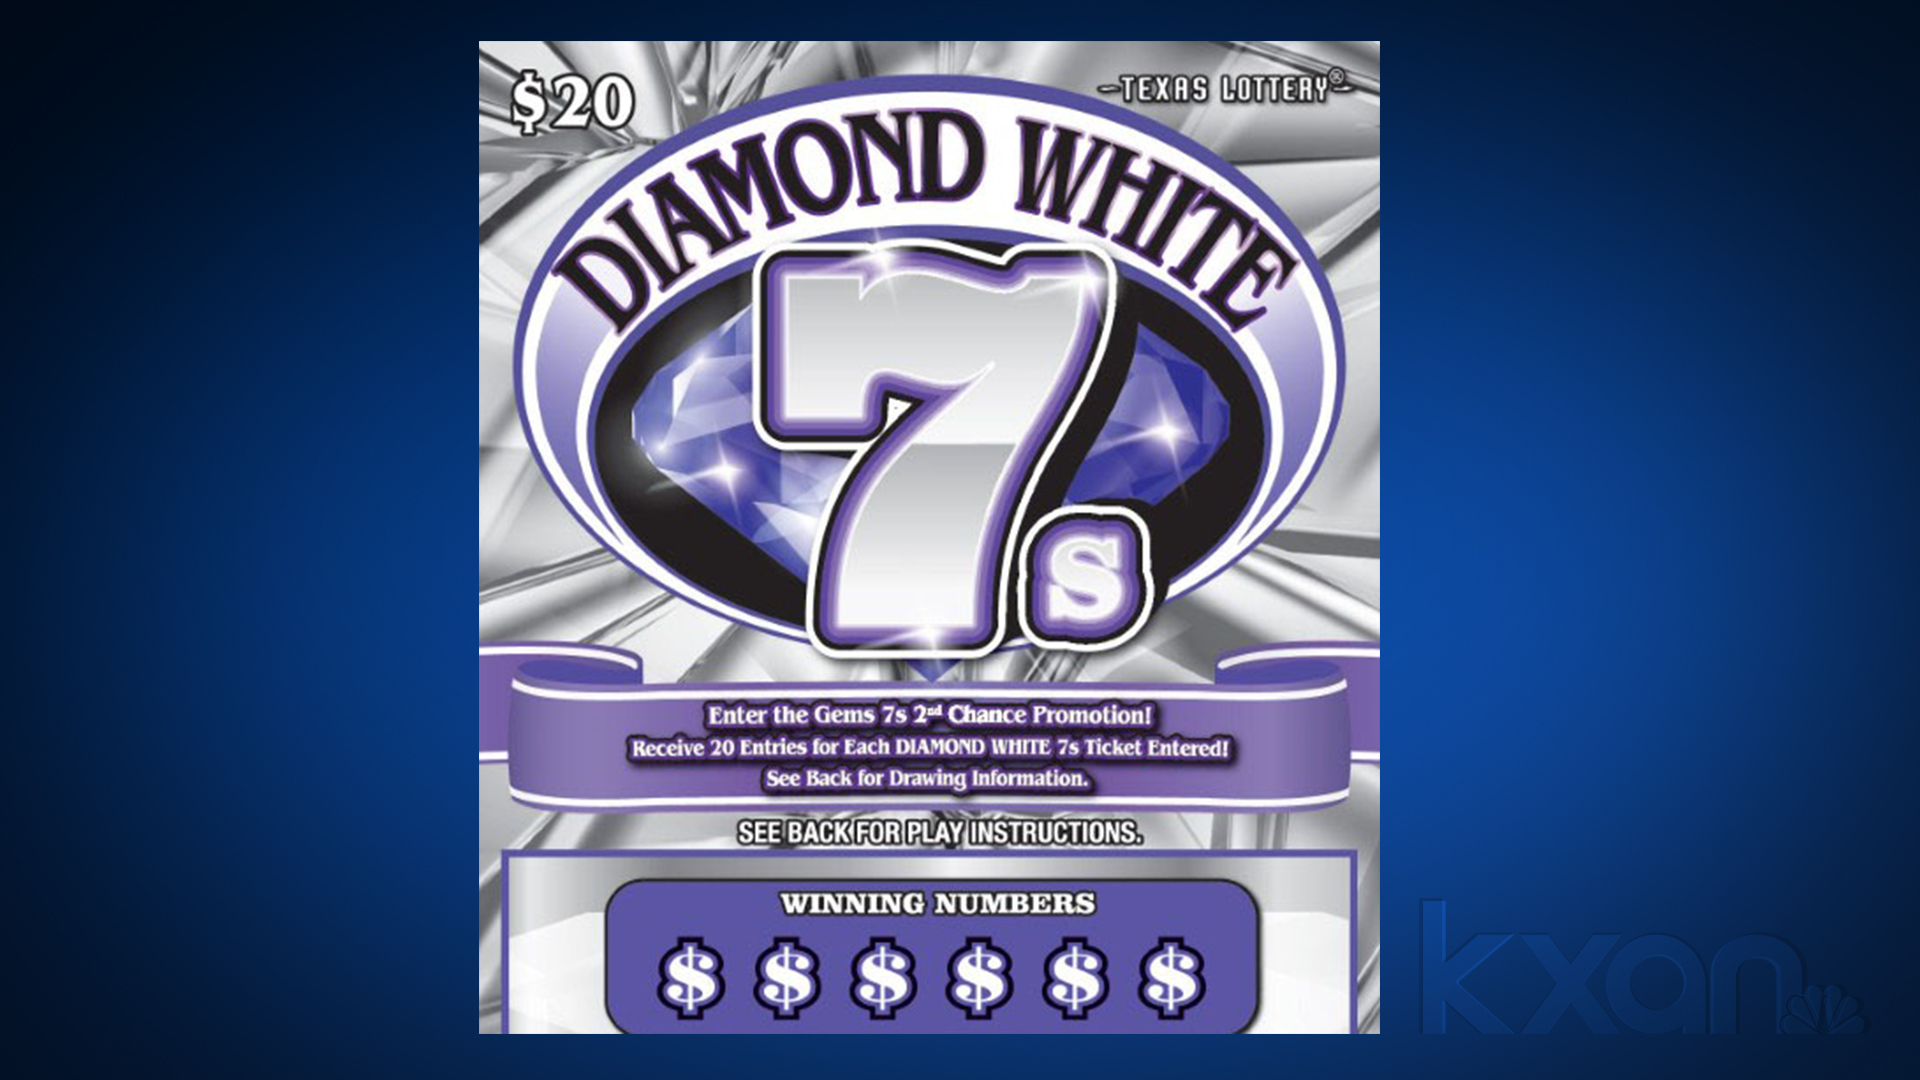 A Pflugerville resident won $1 million on the Diamond Whites 7s scratch ticket game from the Texas Lottery (Photo courtesy of the Texas Lottery)